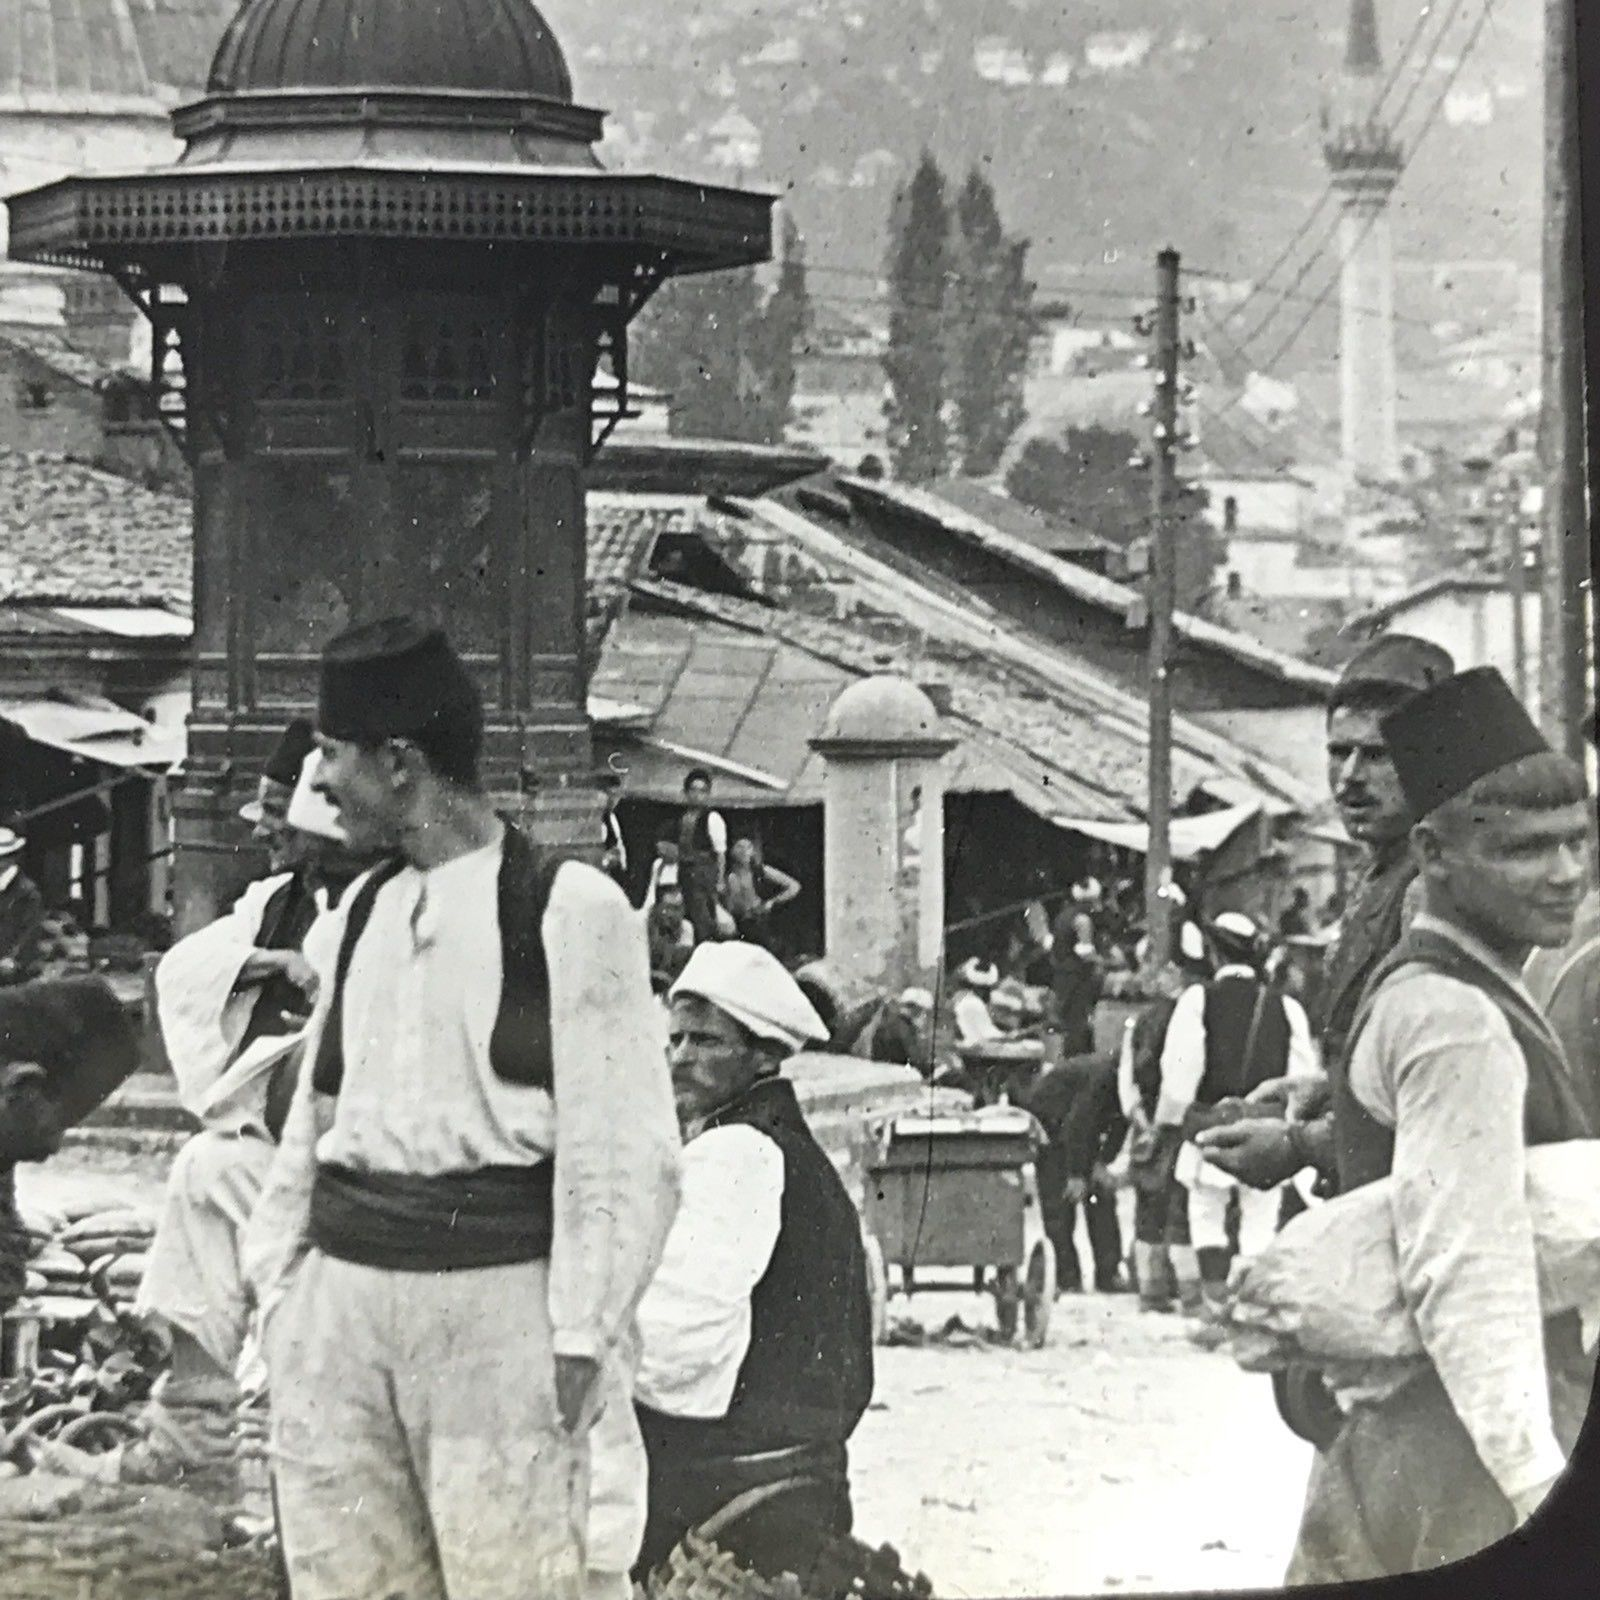 Vtg Keystone Magic Lantern Slide Photo Sarajevo Bosnia Austria Hungary People